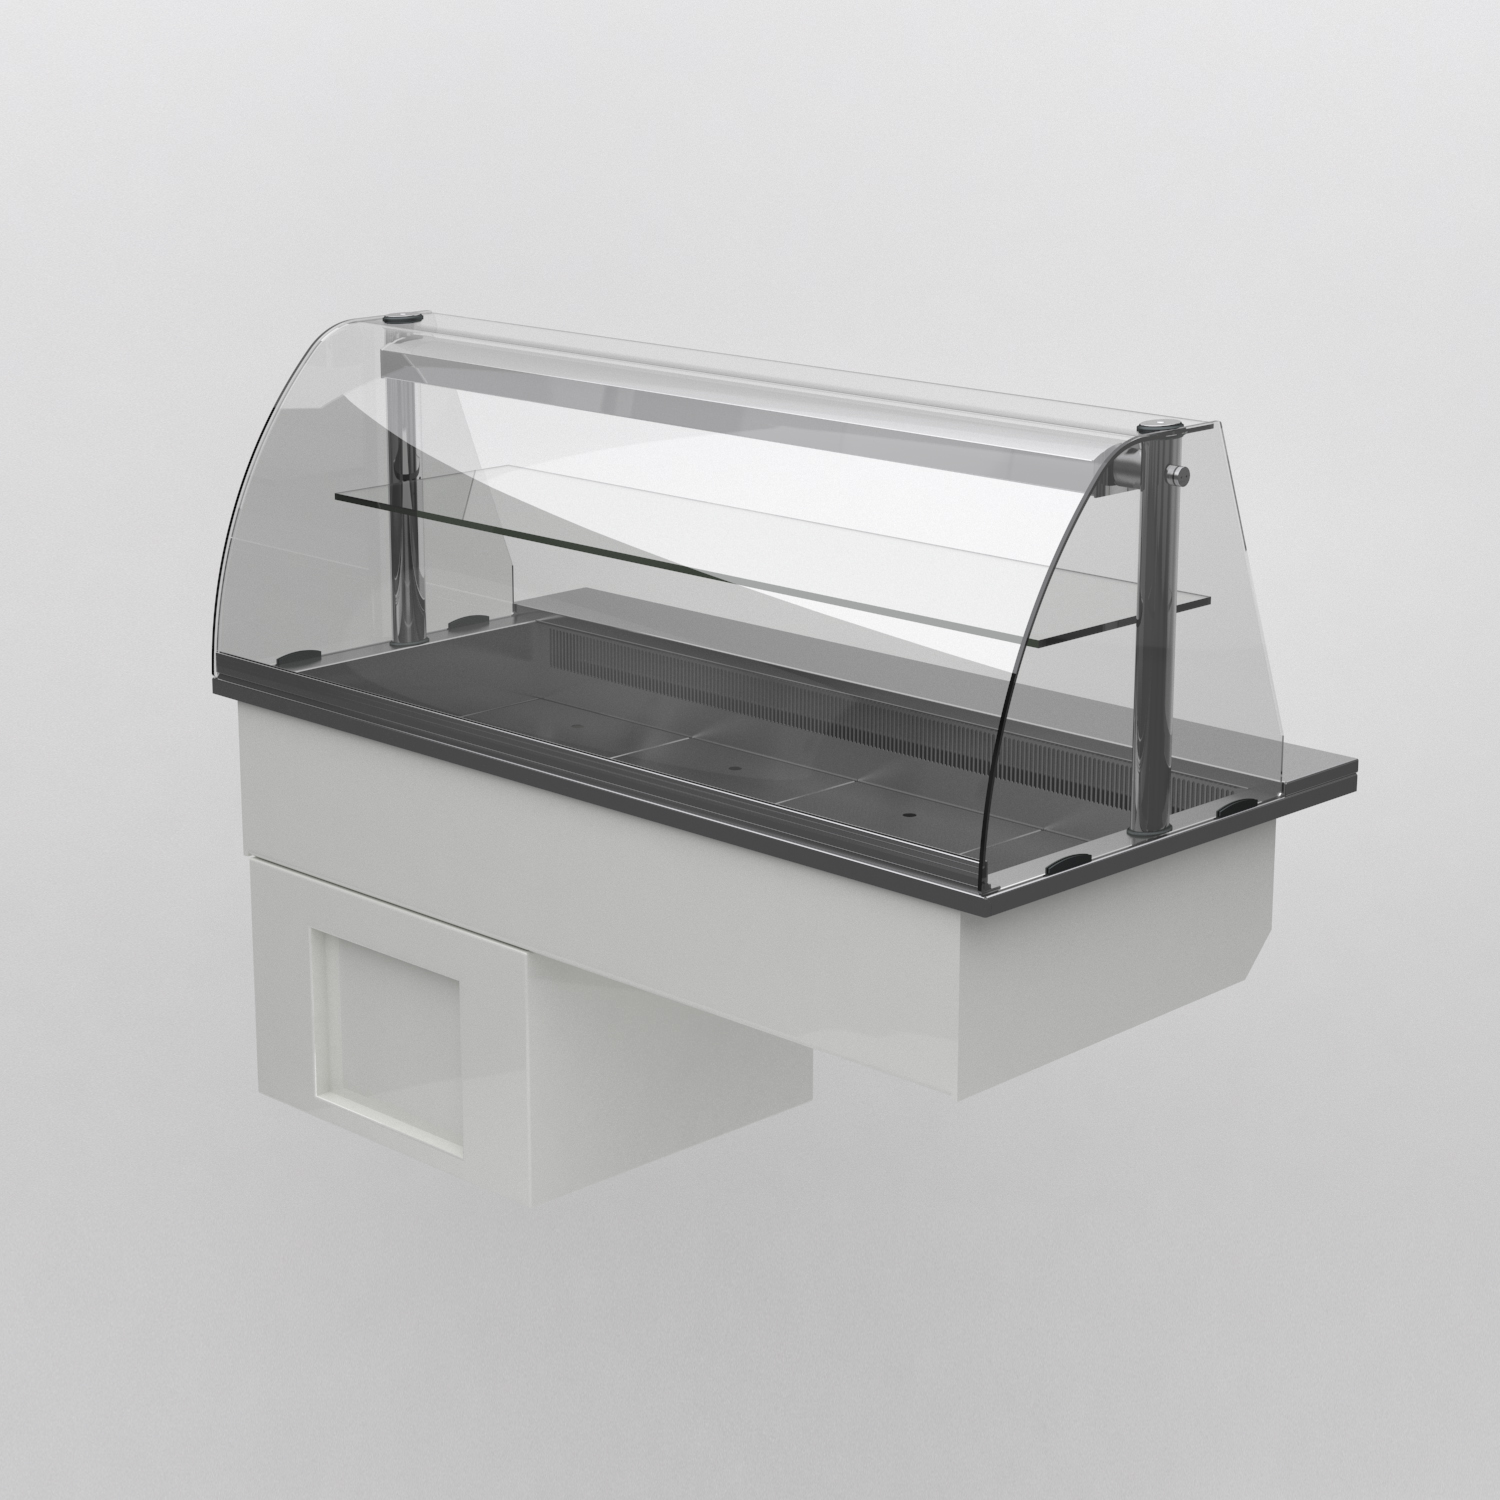 integrale - ICDL4-GO - Chilled Display Deli